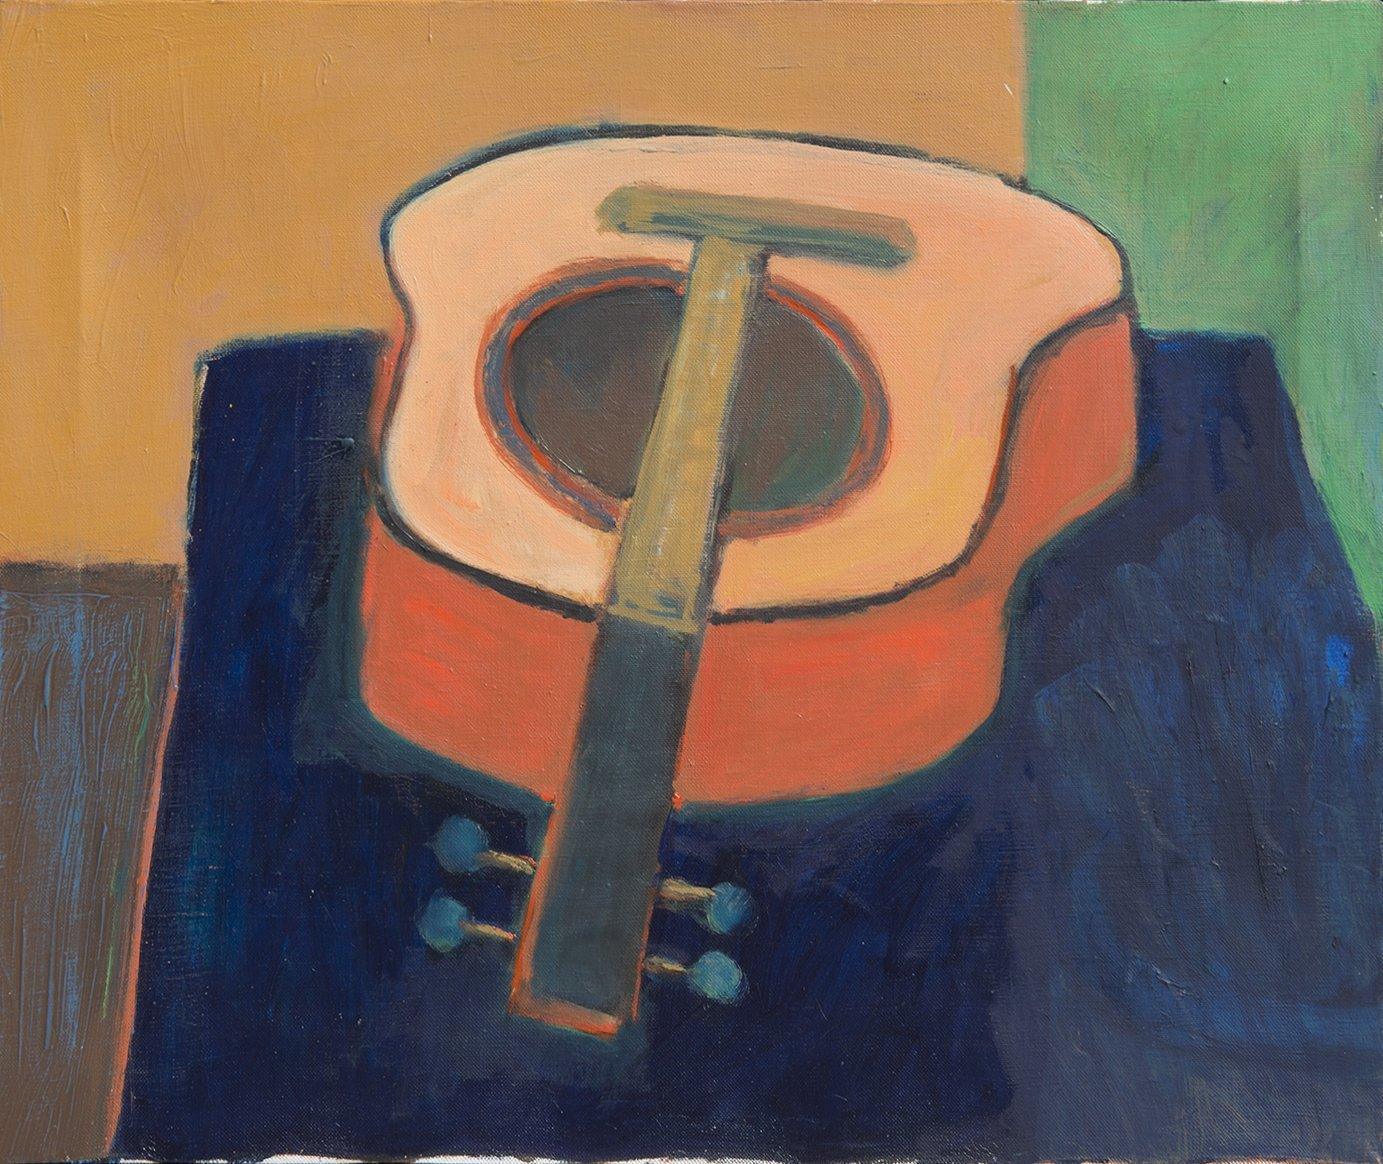 Alan Post, Guitar Foreshortened, 1975